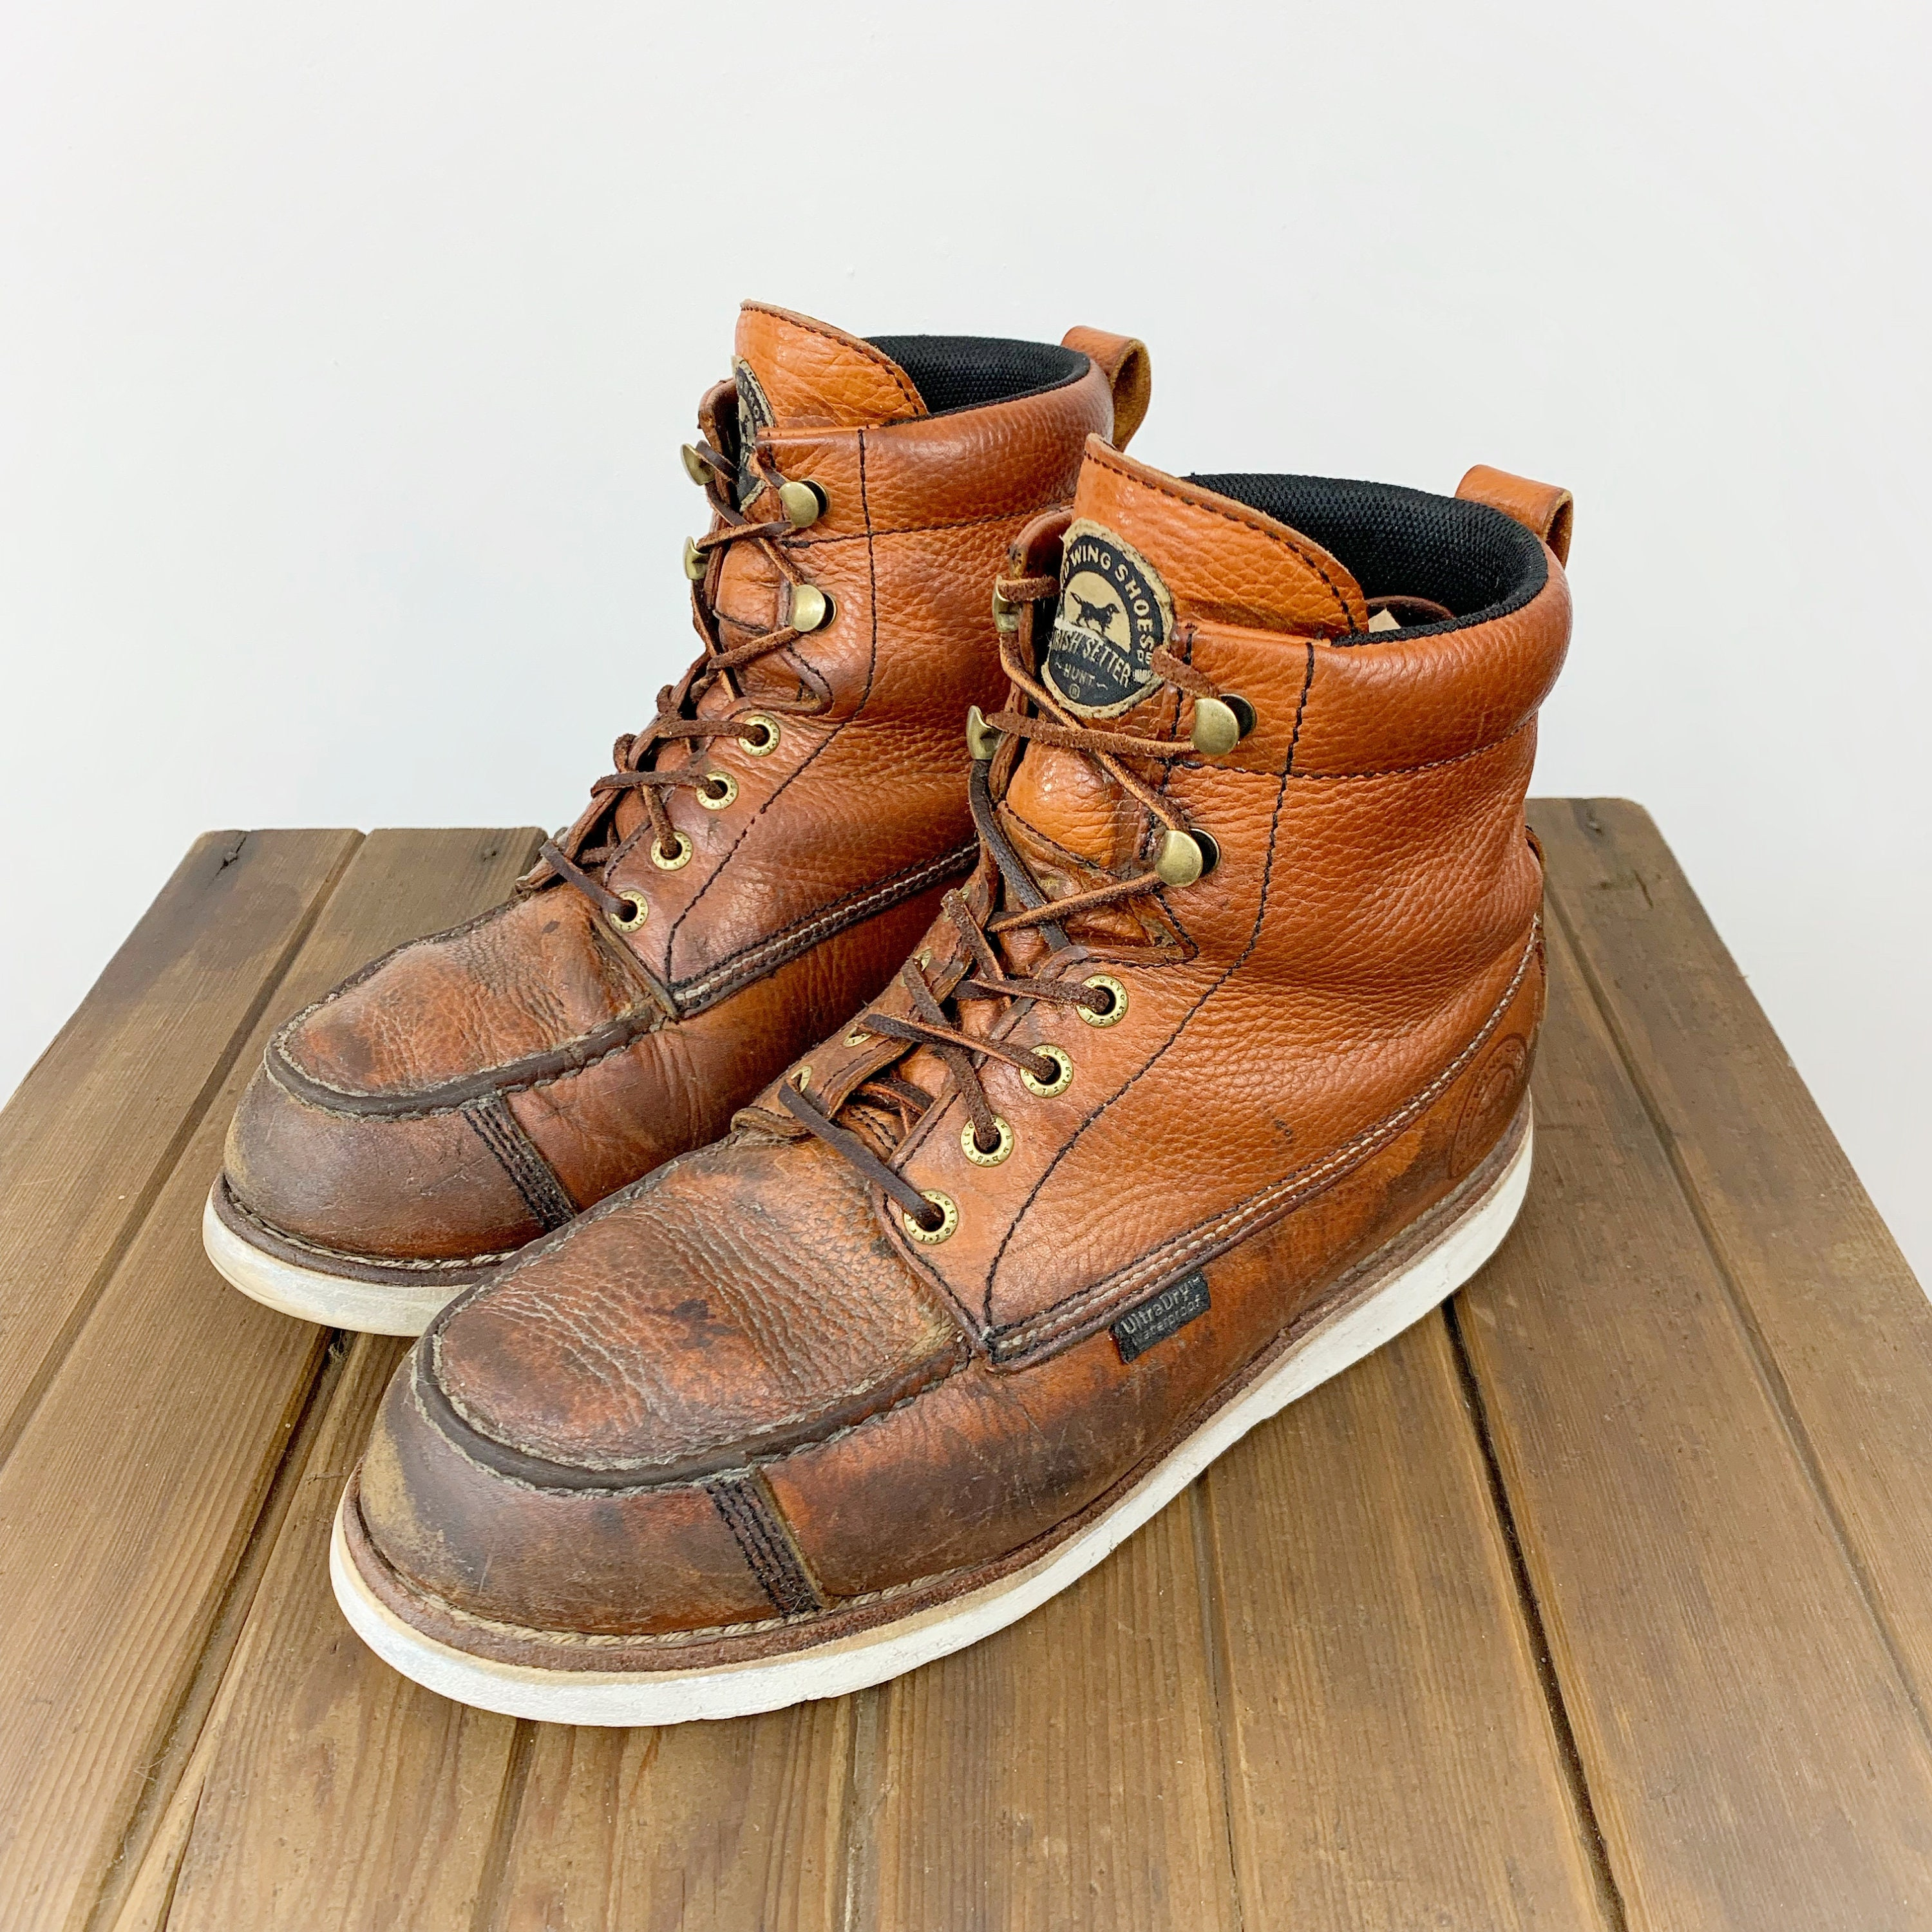 ae034b9cfc173 Pebble Leather Work Boot Irish Setter Red Wing Men's 8.5 Women's 10.5 Moc  Toe Moccasin Carmel Lacing Round Toe Distressed Grunge Wedge Crepe